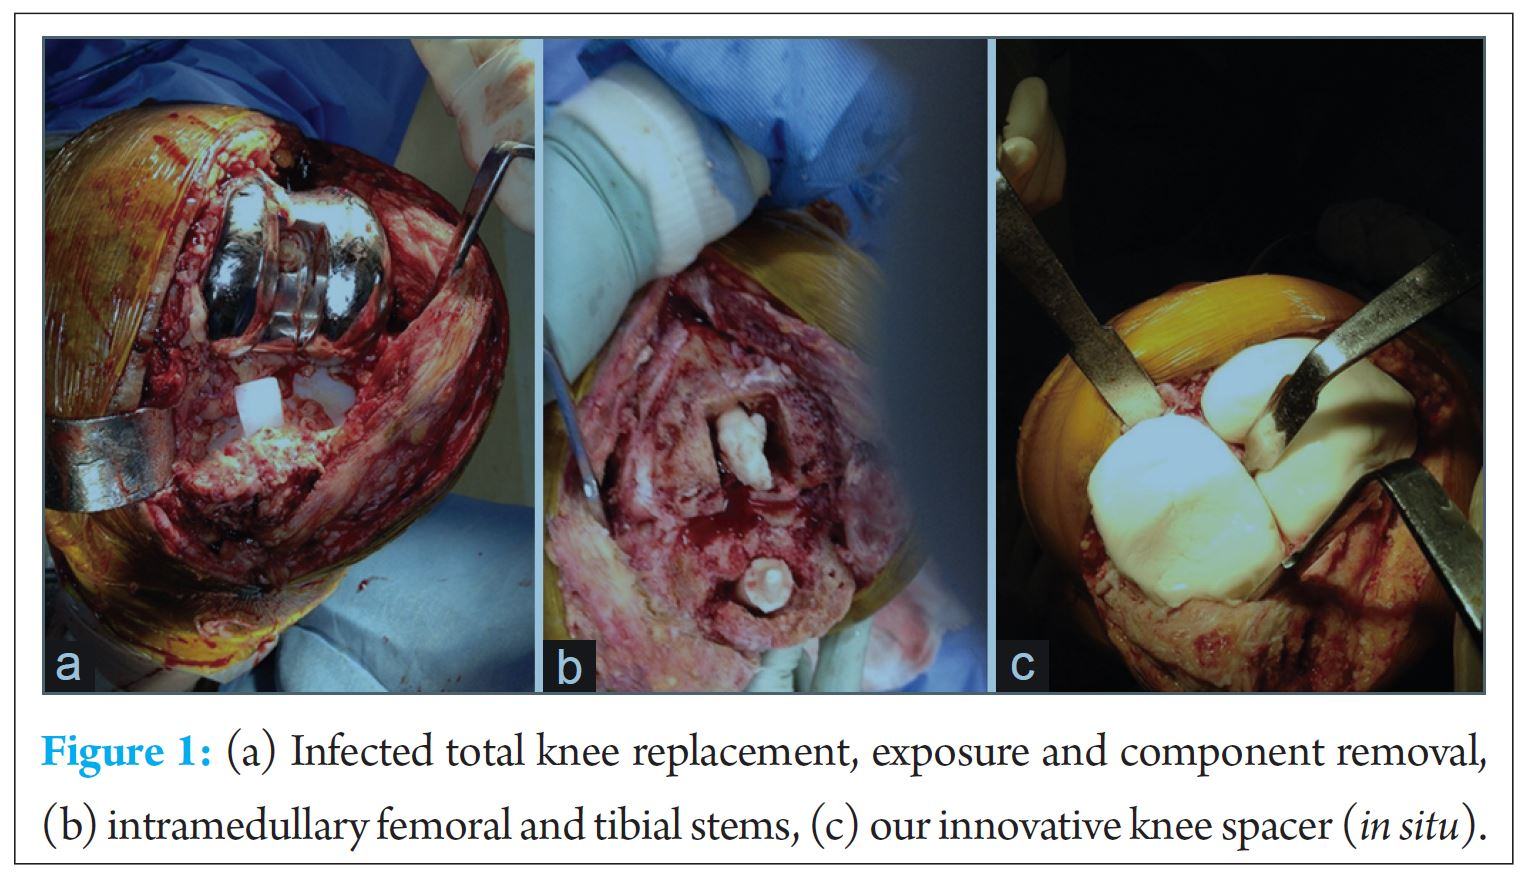 Management Of Infected Total Knee Arthroplasty By A New Innovative